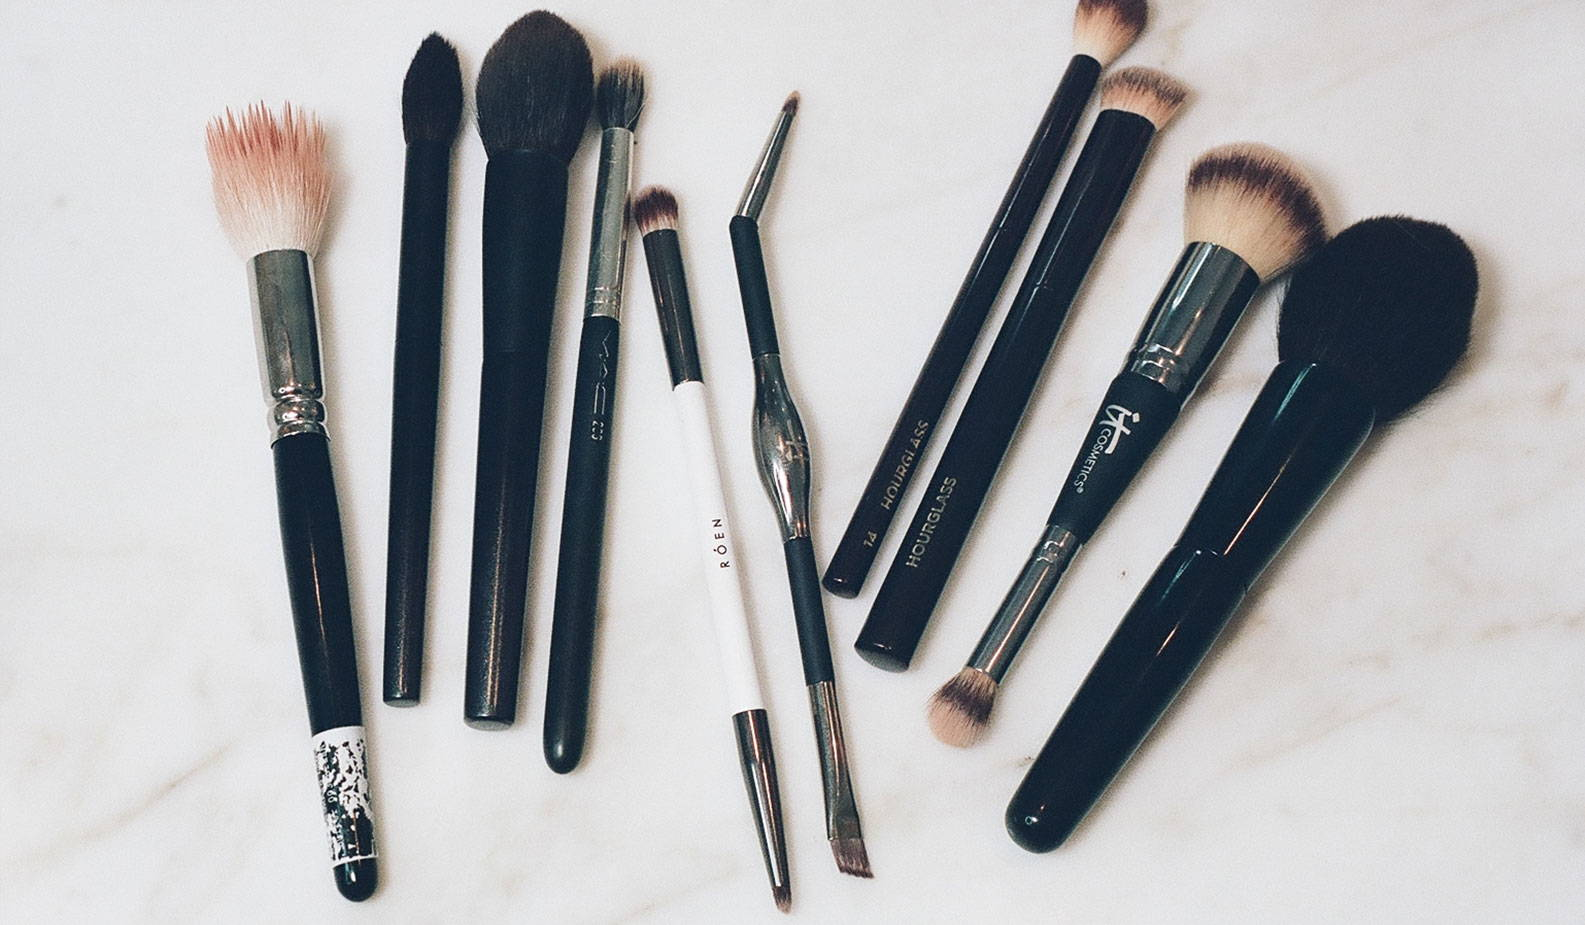 In My Bathroom: Rosie's Top Ten Makeup Brushes